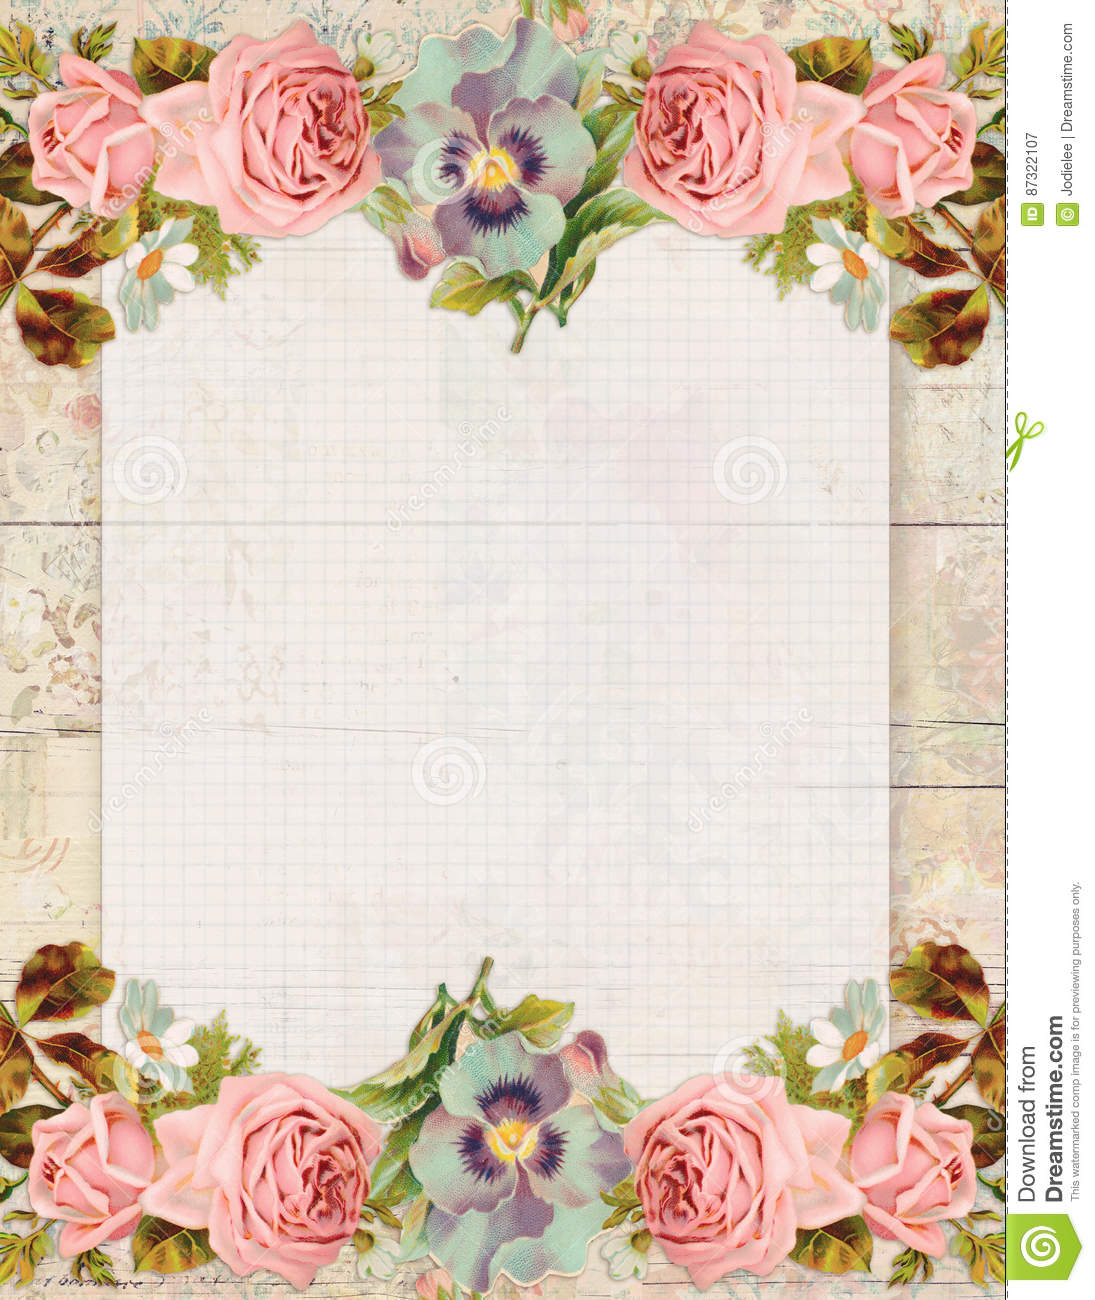 vintage botanical ledger background with flowers royalty. Black Bedroom Furniture Sets. Home Design Ideas